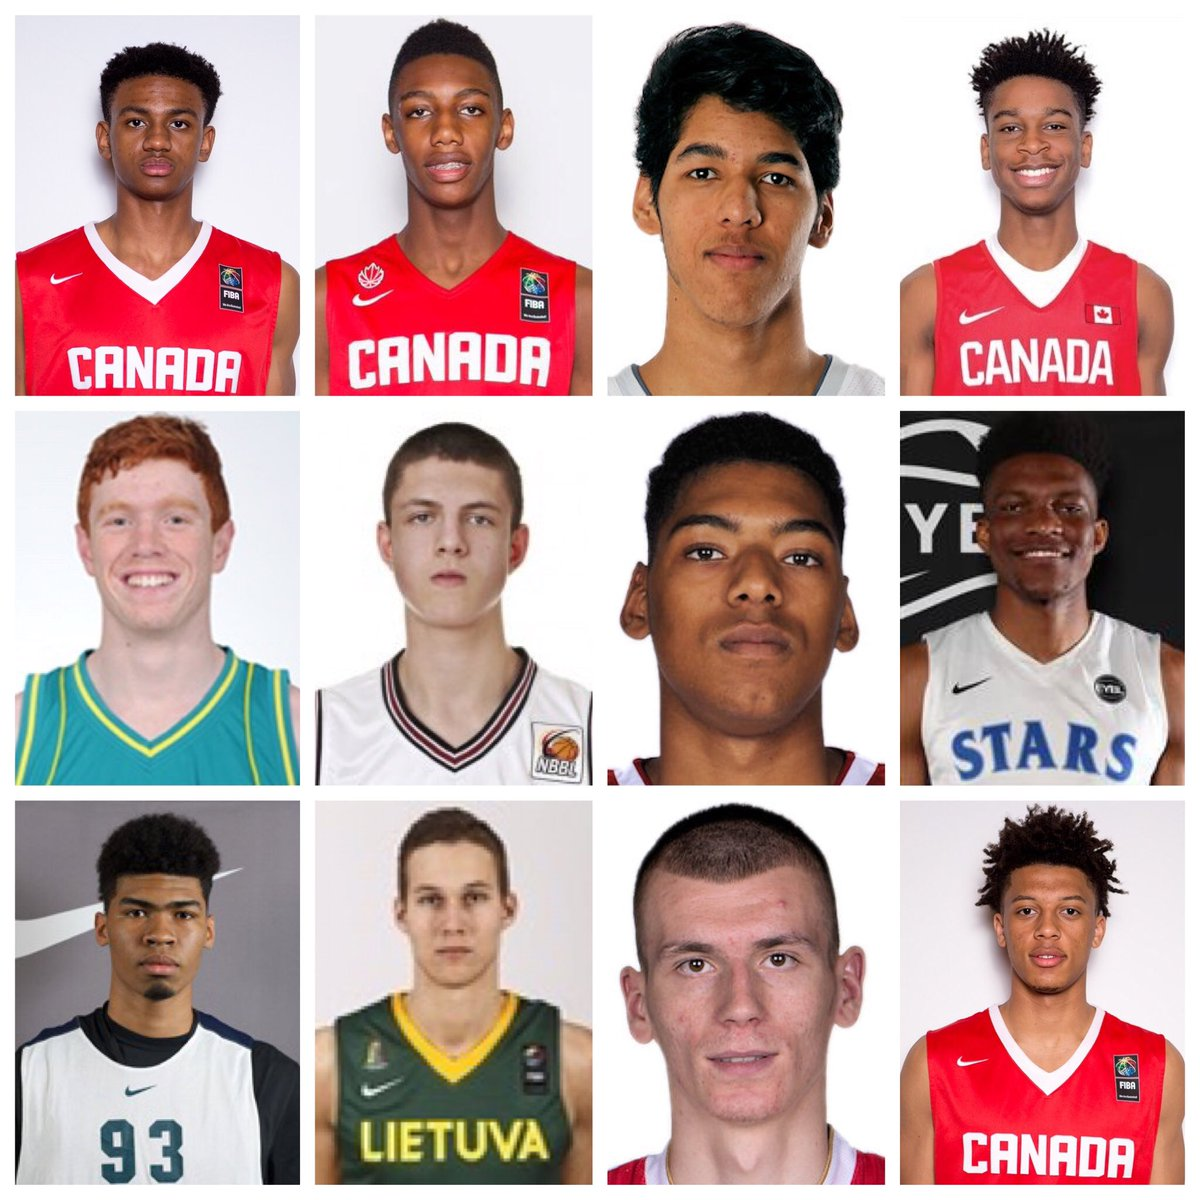 The 2017 Nike Hoop Summit World Team boasts a talented squad, chasing its 4th win in 6 years against the USA.  Friday April 7, Portland, OR!